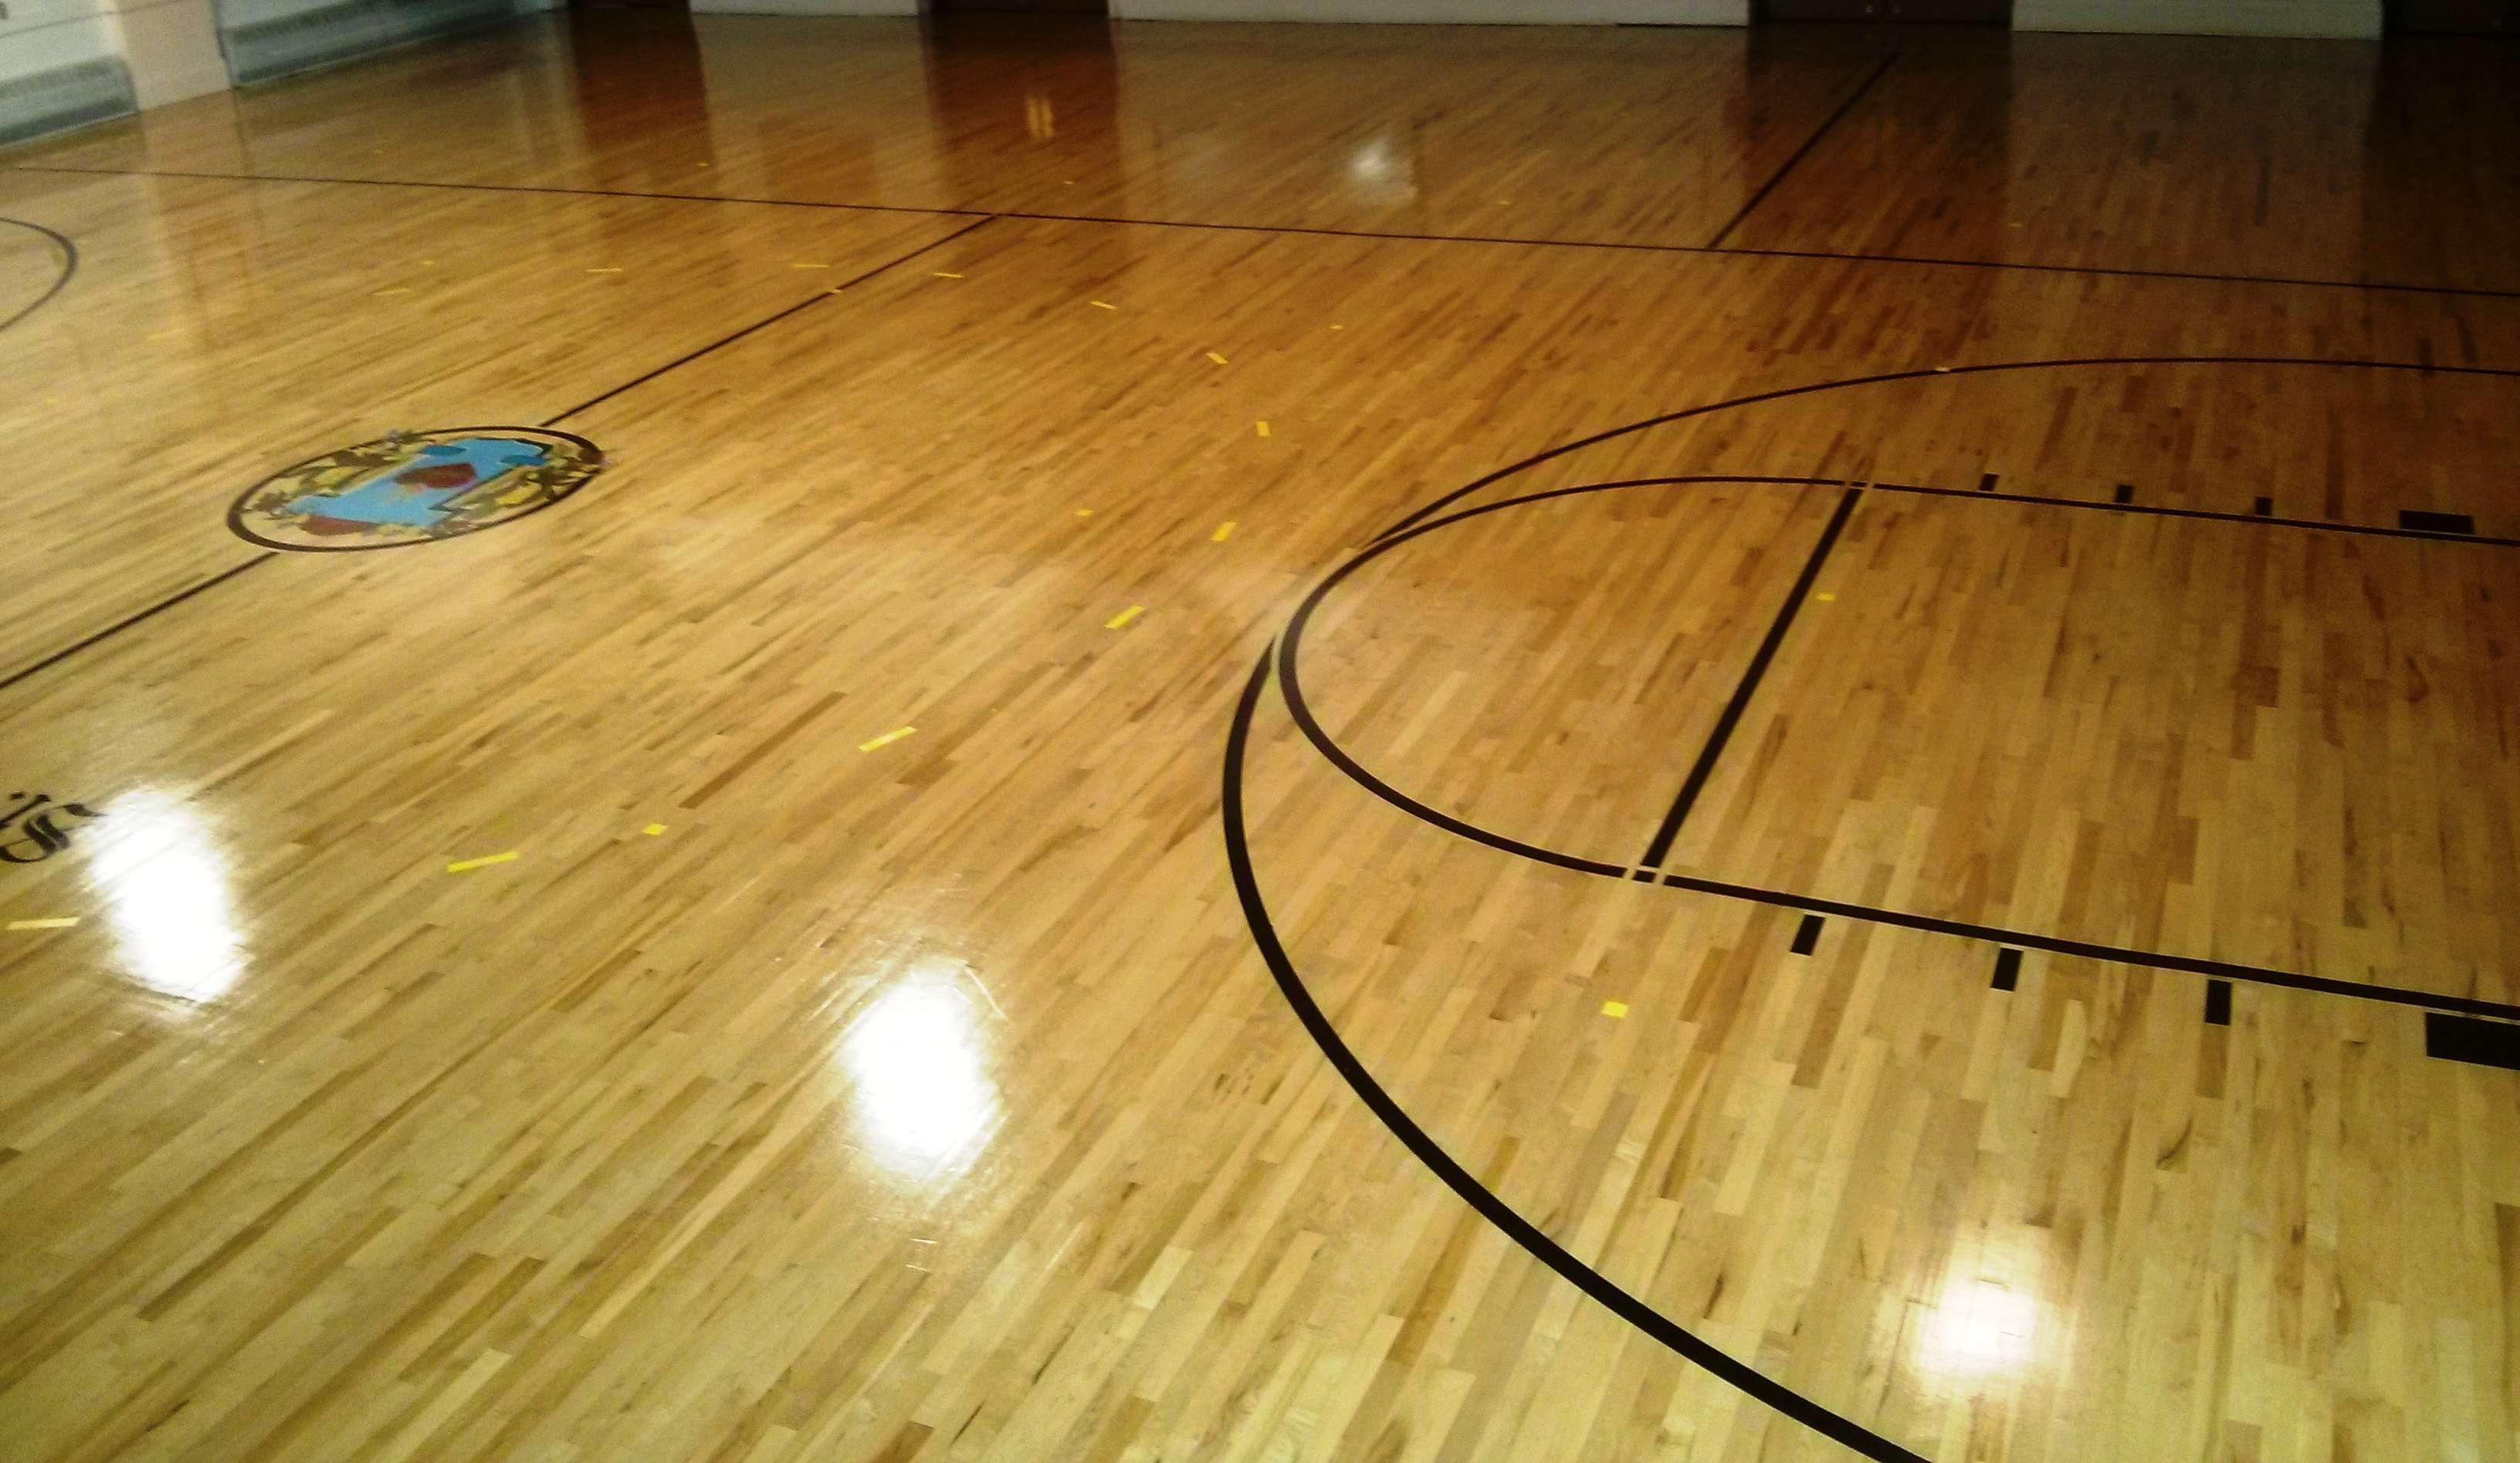 court construction basketball floor indoor courts floors